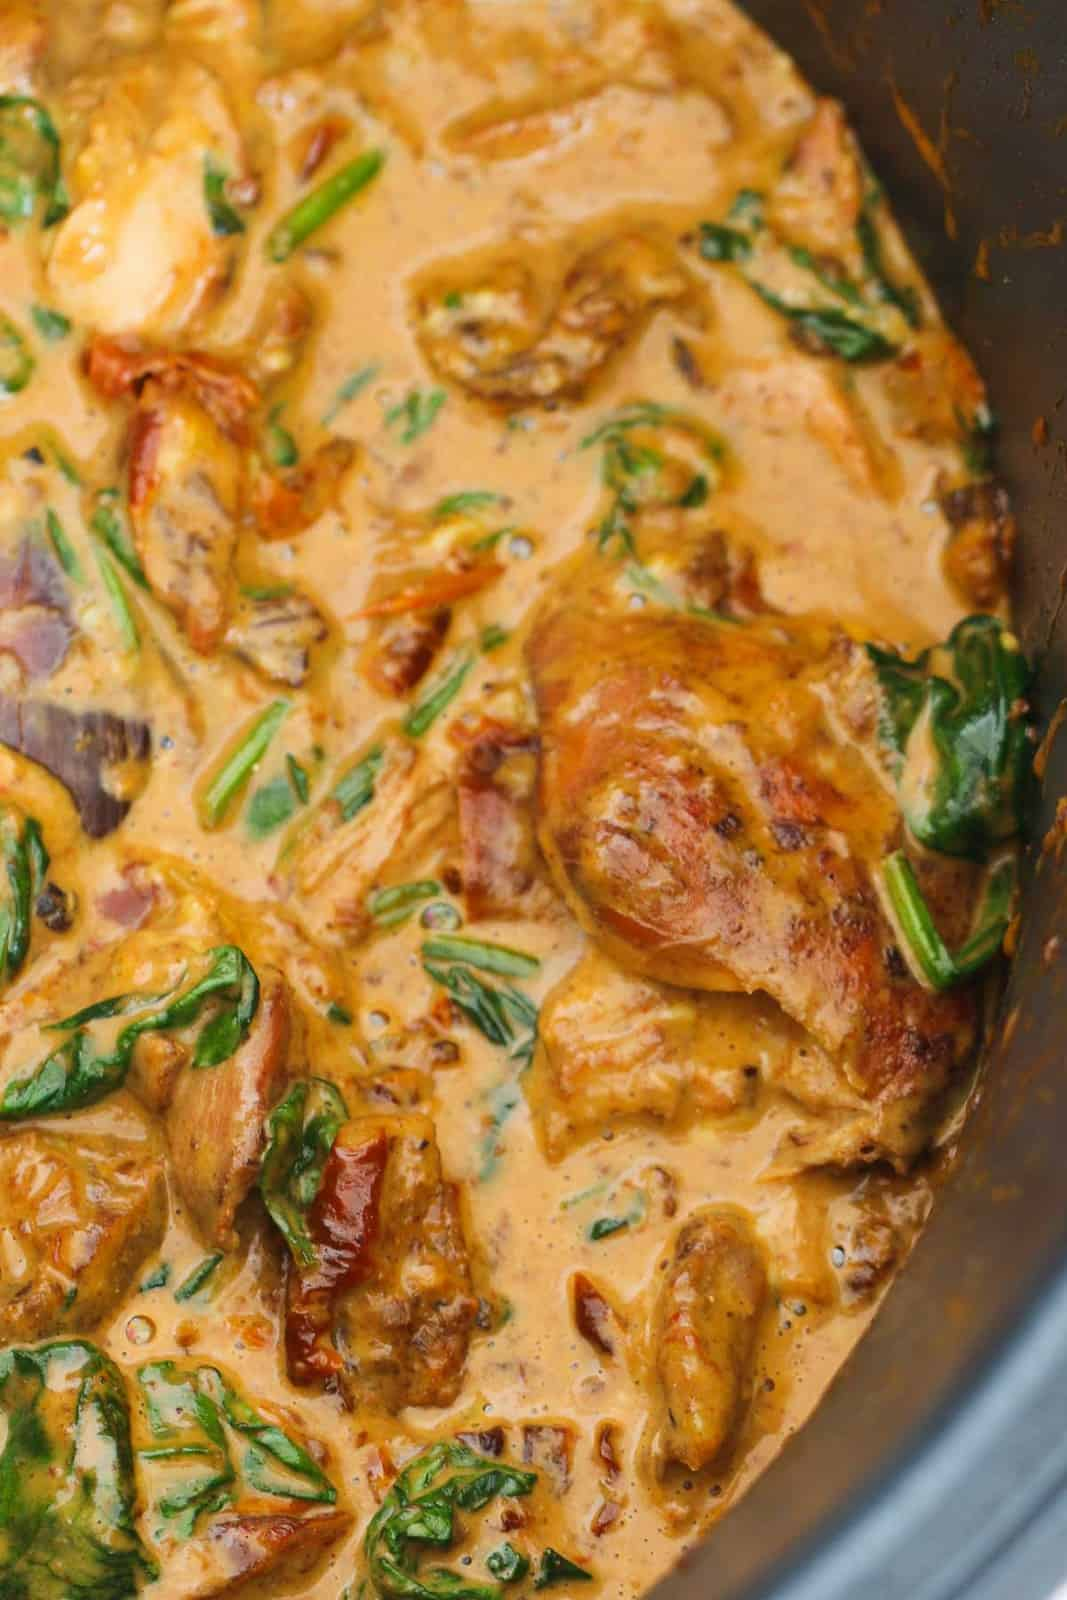 A slow cooker filled with creamy chicken, sundried tomatoes and spinach.